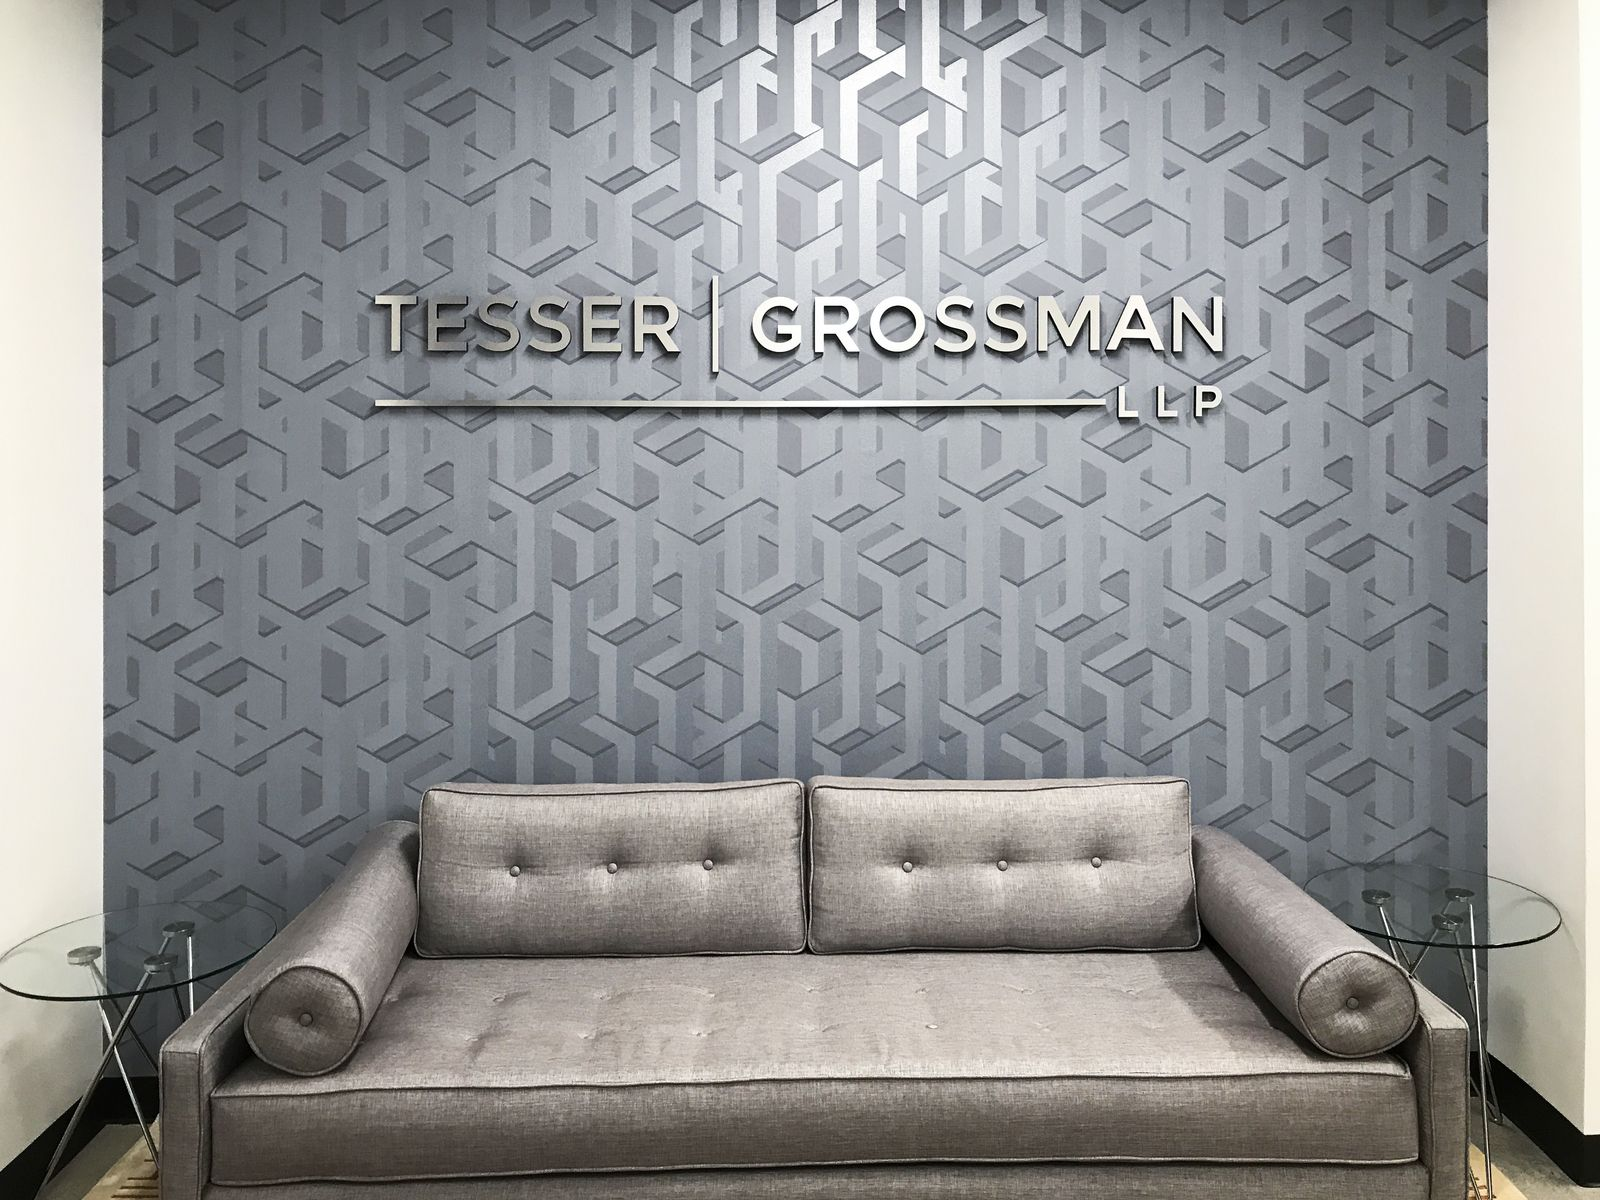 Tesser Grossman LLP 3d sign letters with a silver brushed finish made of ultraboard for lobby branding